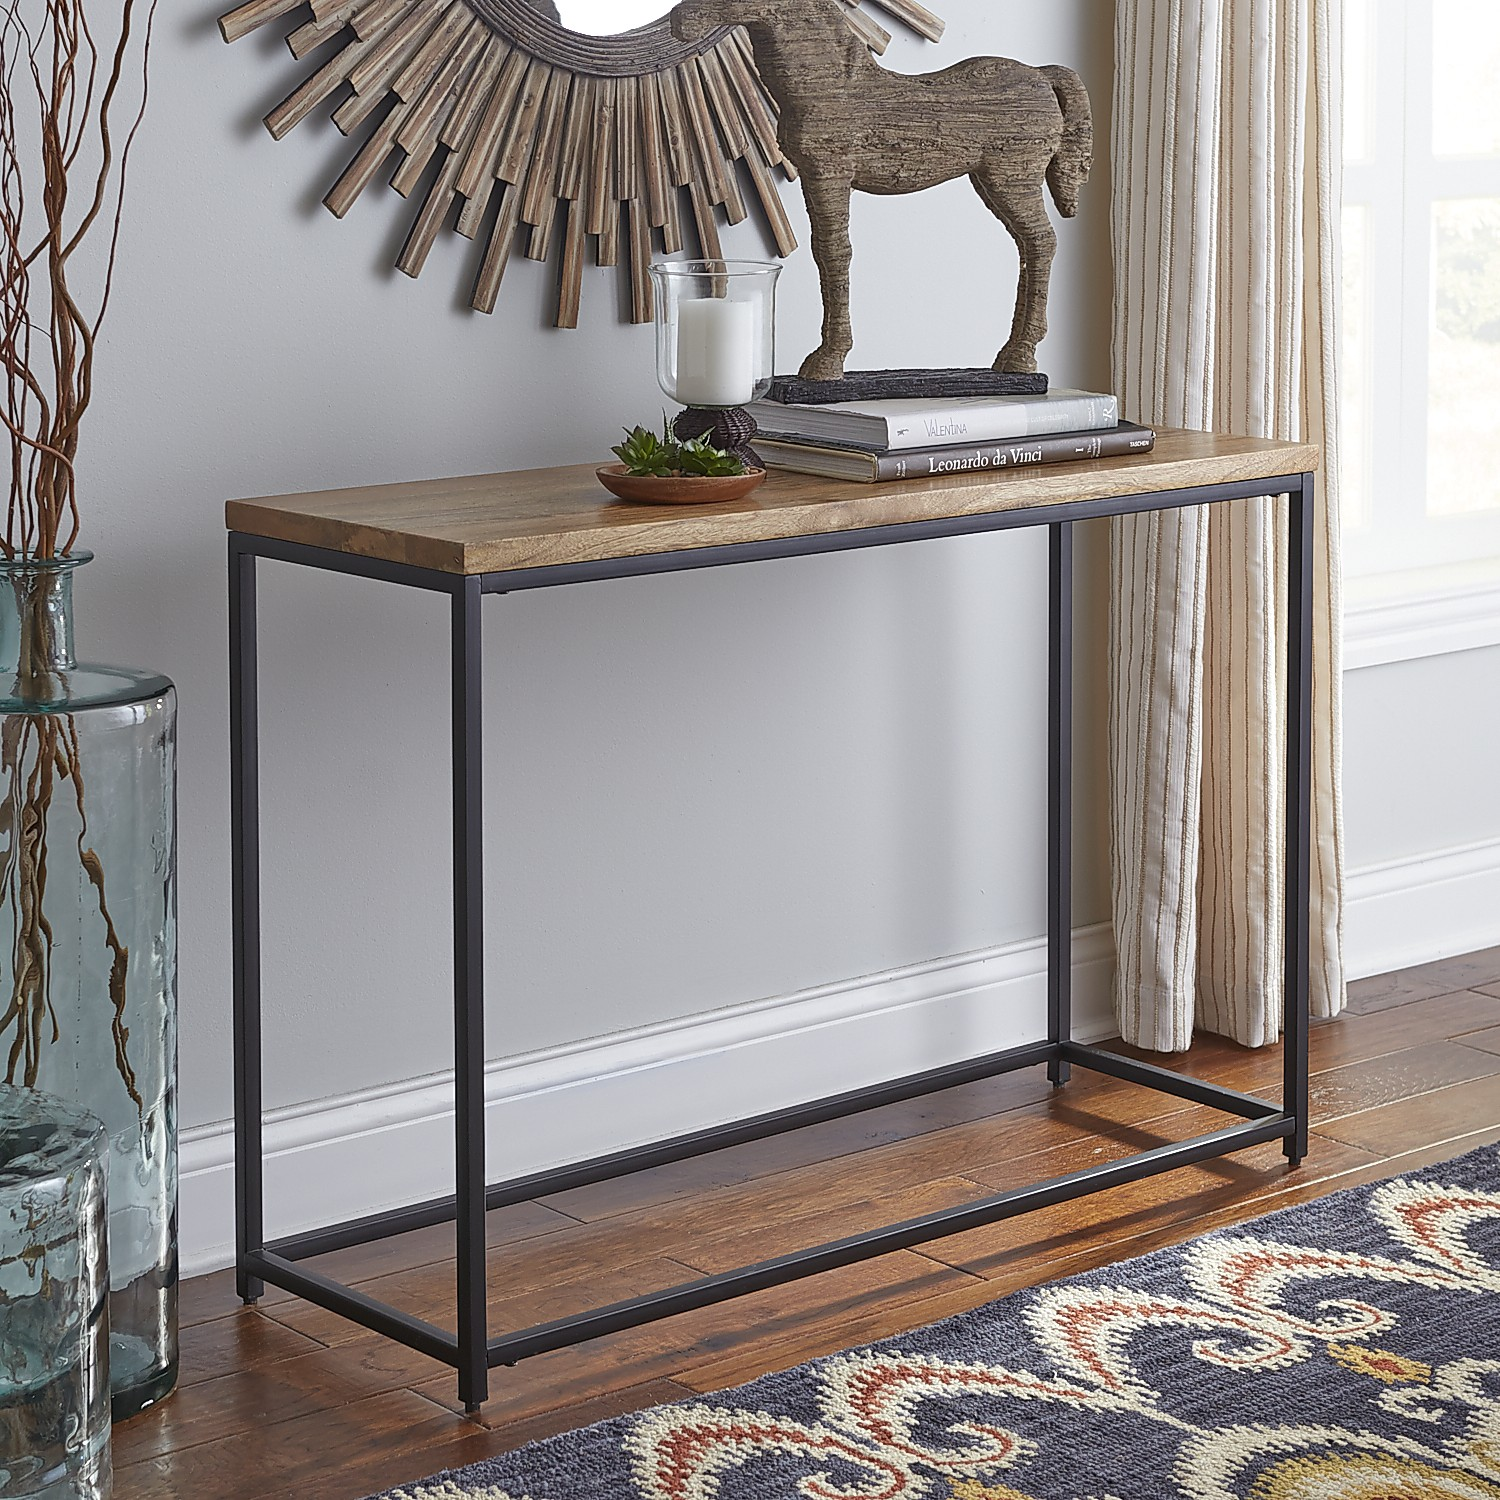 Takat Natural Mango Wood Console Table